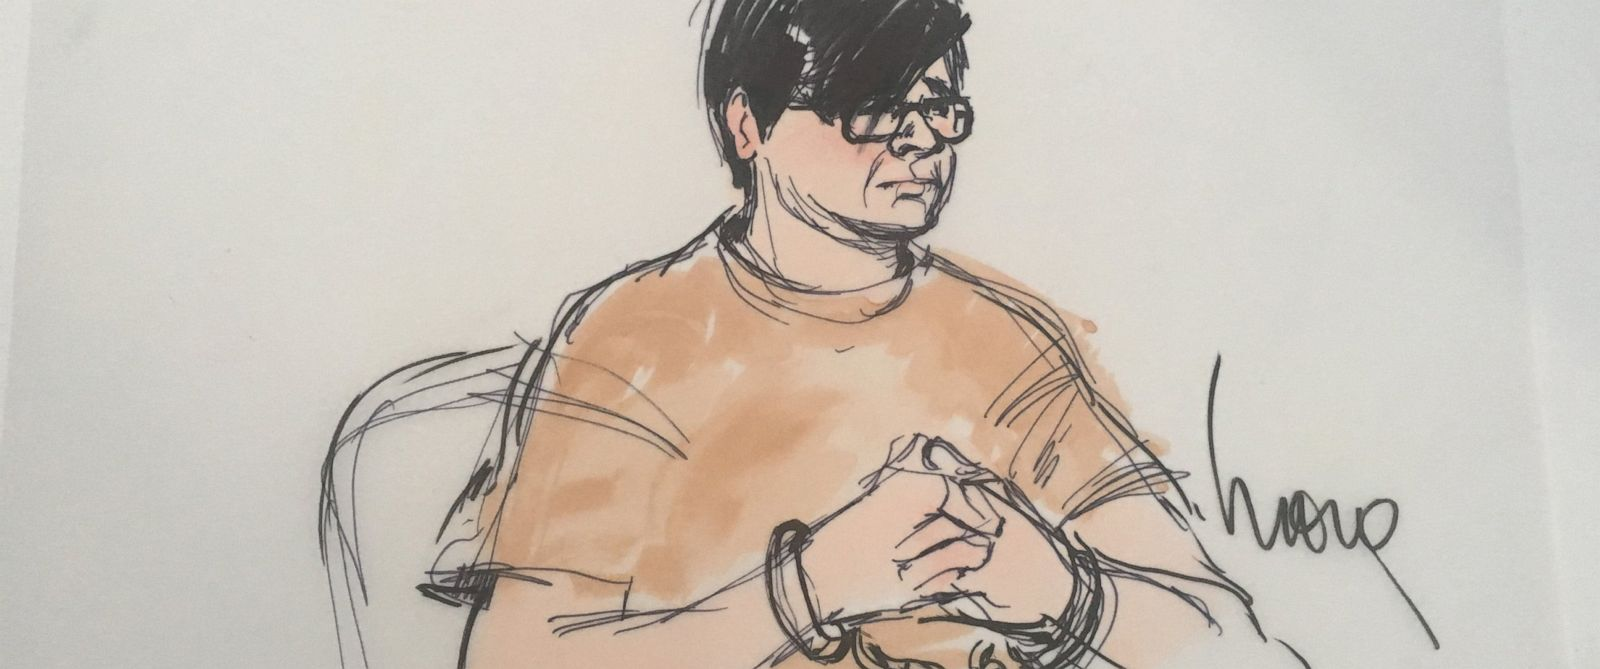 PHOTO: A courtroom sketch depicts Enrique Marquez, a neighbor and friend of one of the San Bernardino shooters, appearing in court on Dec. 17, 2015.